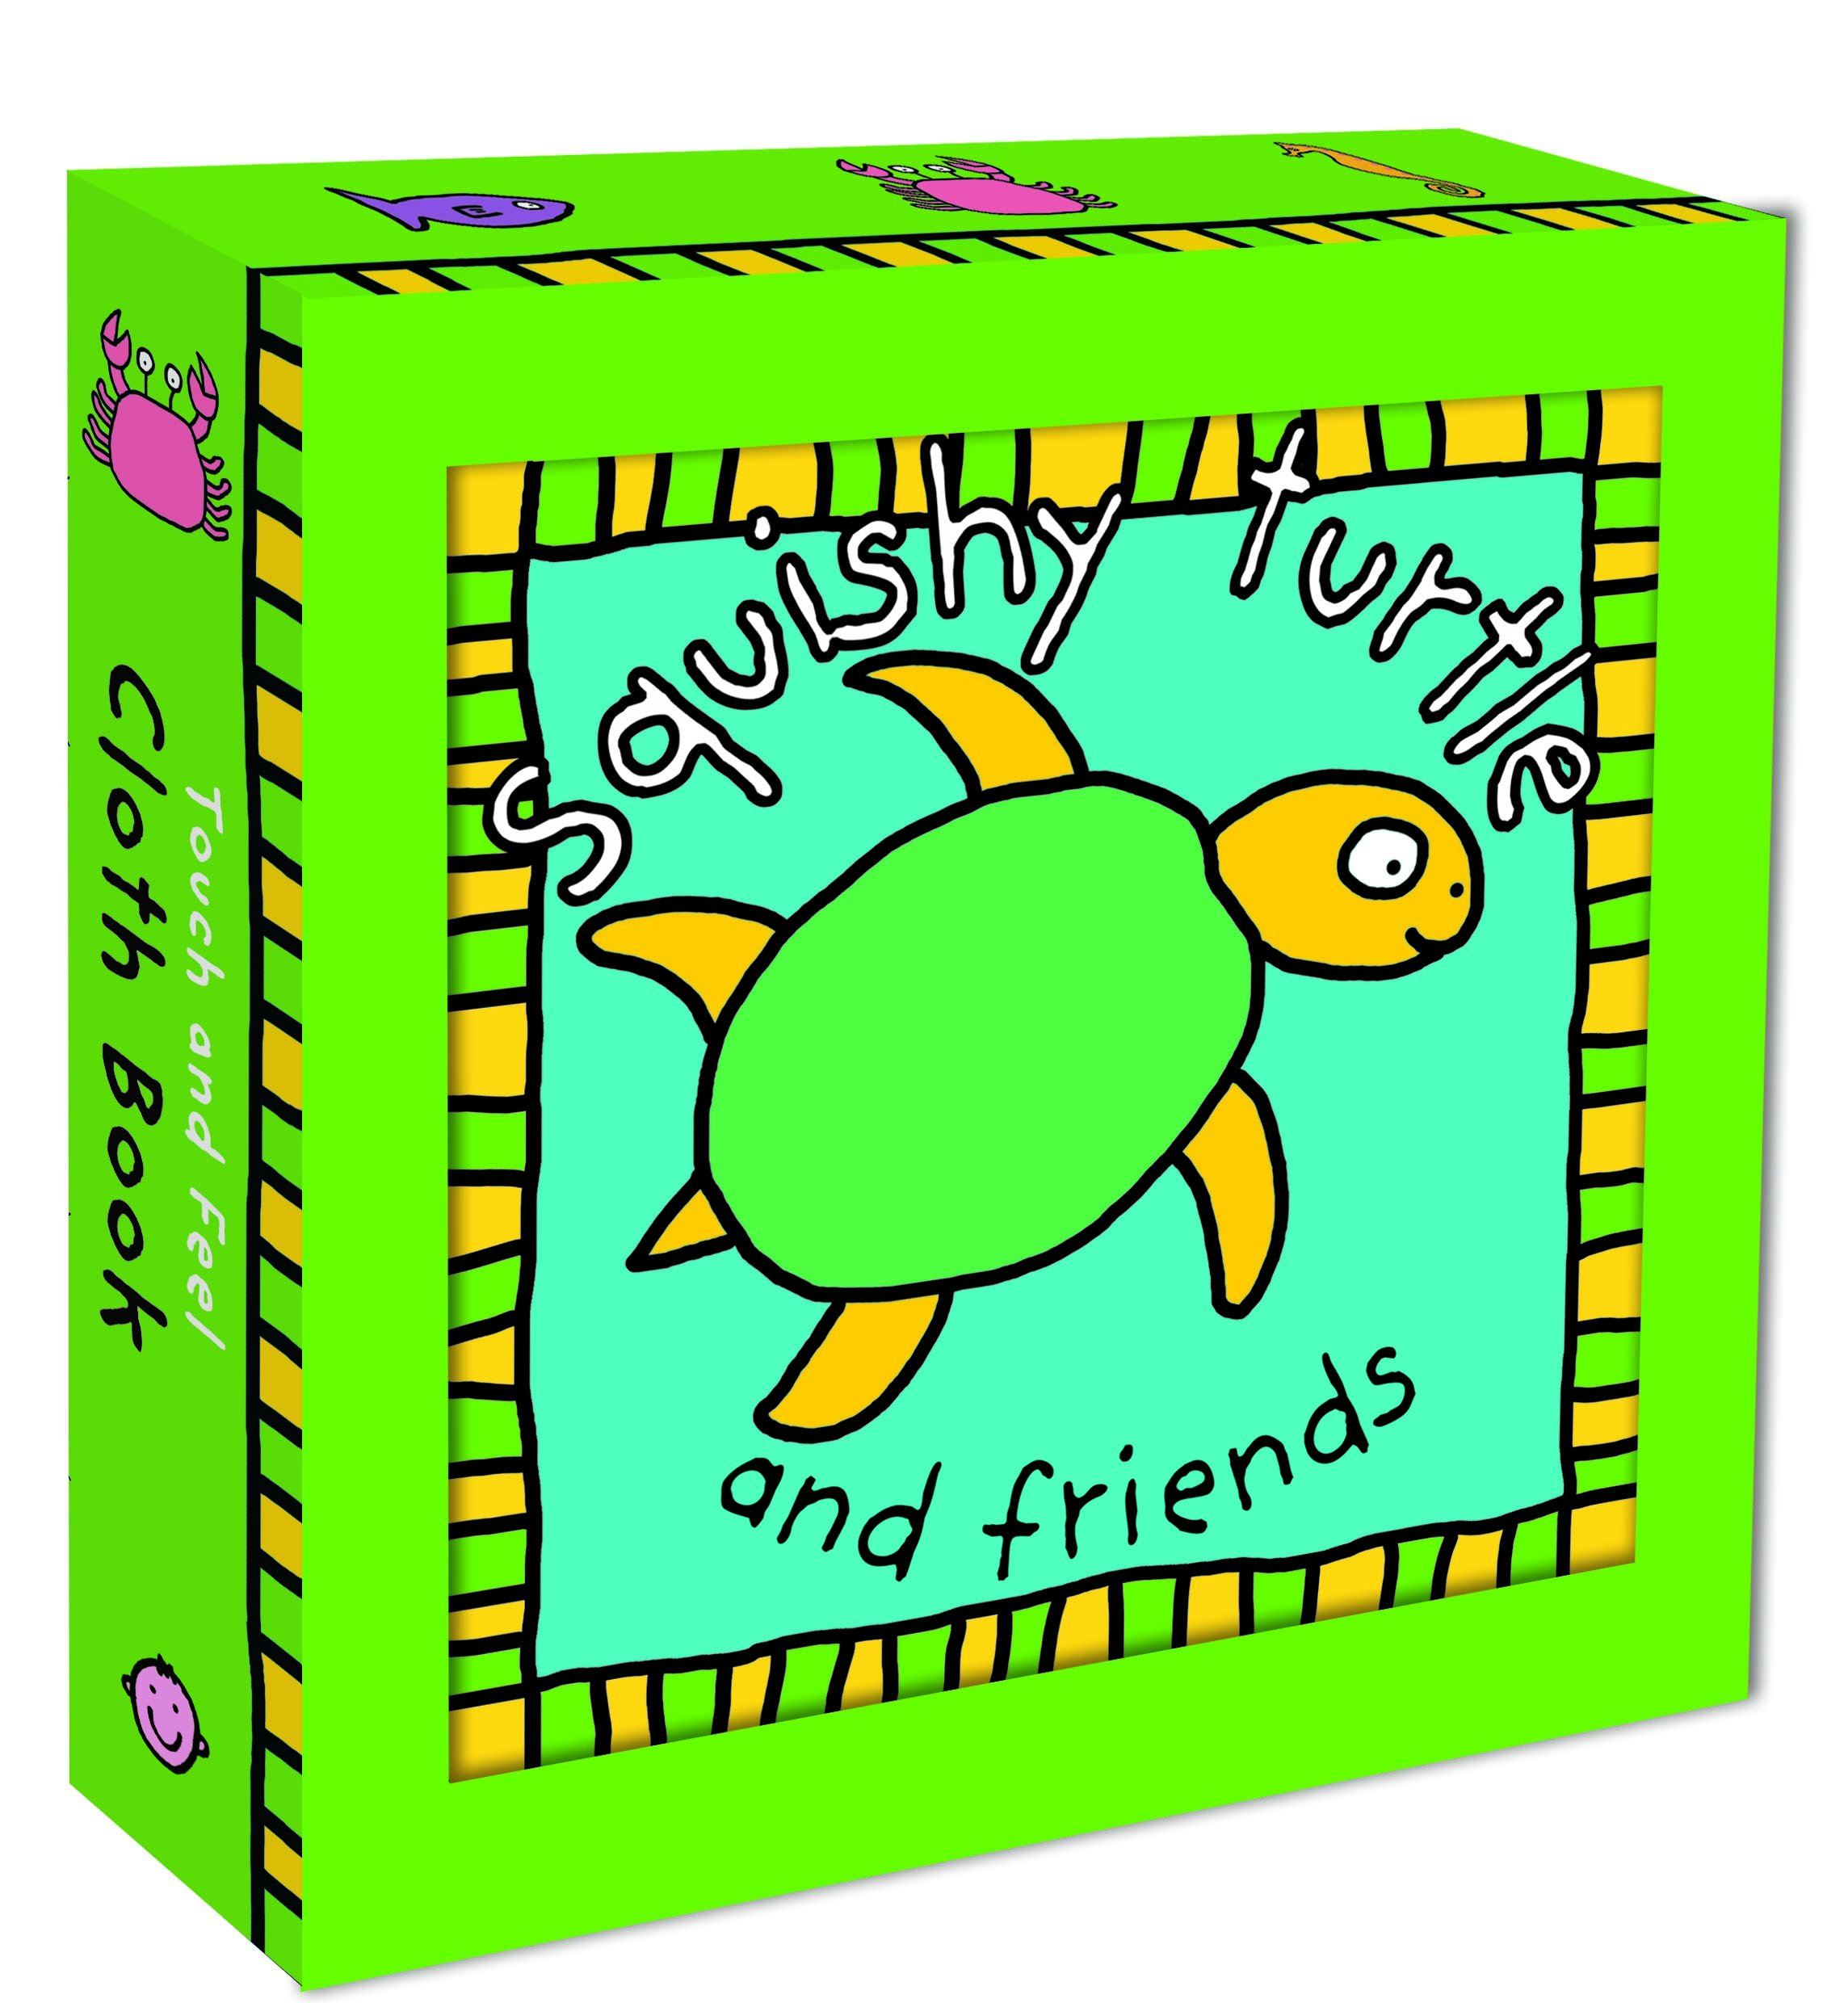 Squishy Turtle Cloth Touch Books